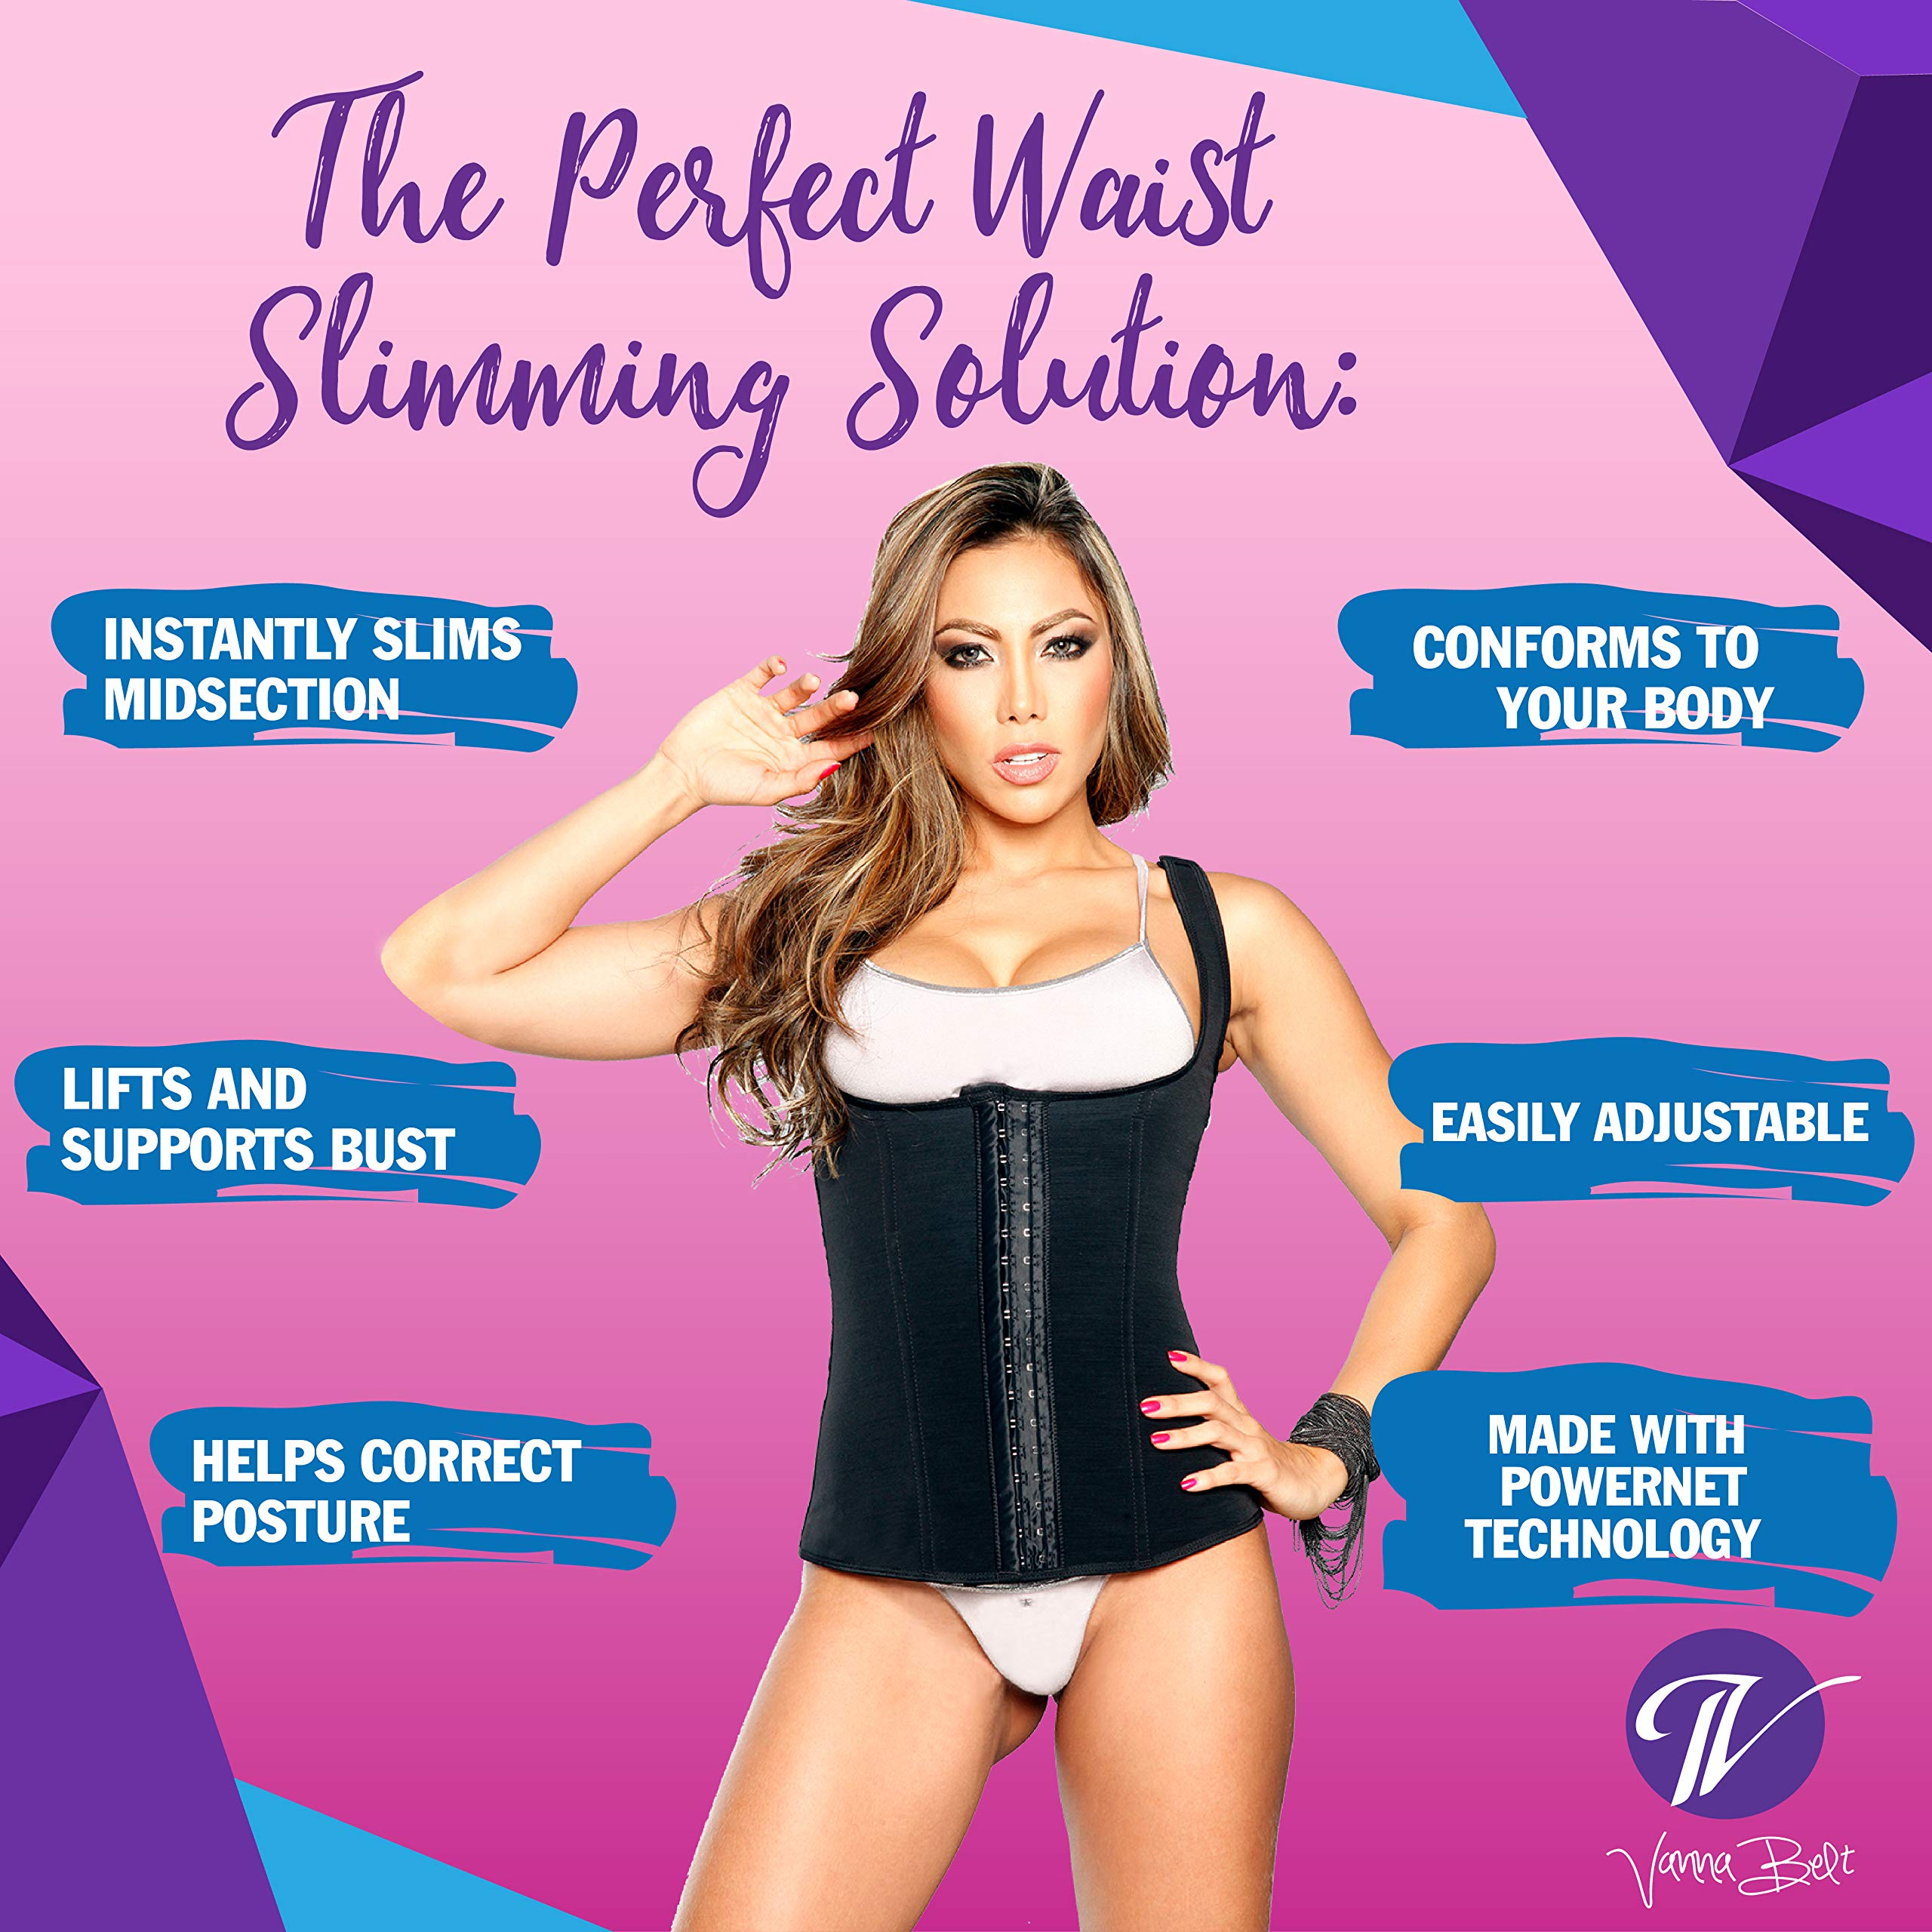 Vanna Belt Waist Trainer V-VEST Waist and Back Trimmer - XXL - Instantly Slims Midsection 2-3 Inches While Wearing Product, Lifts and Supports Busts, Helps Correct Posture by Vanna Belt (Image #4)